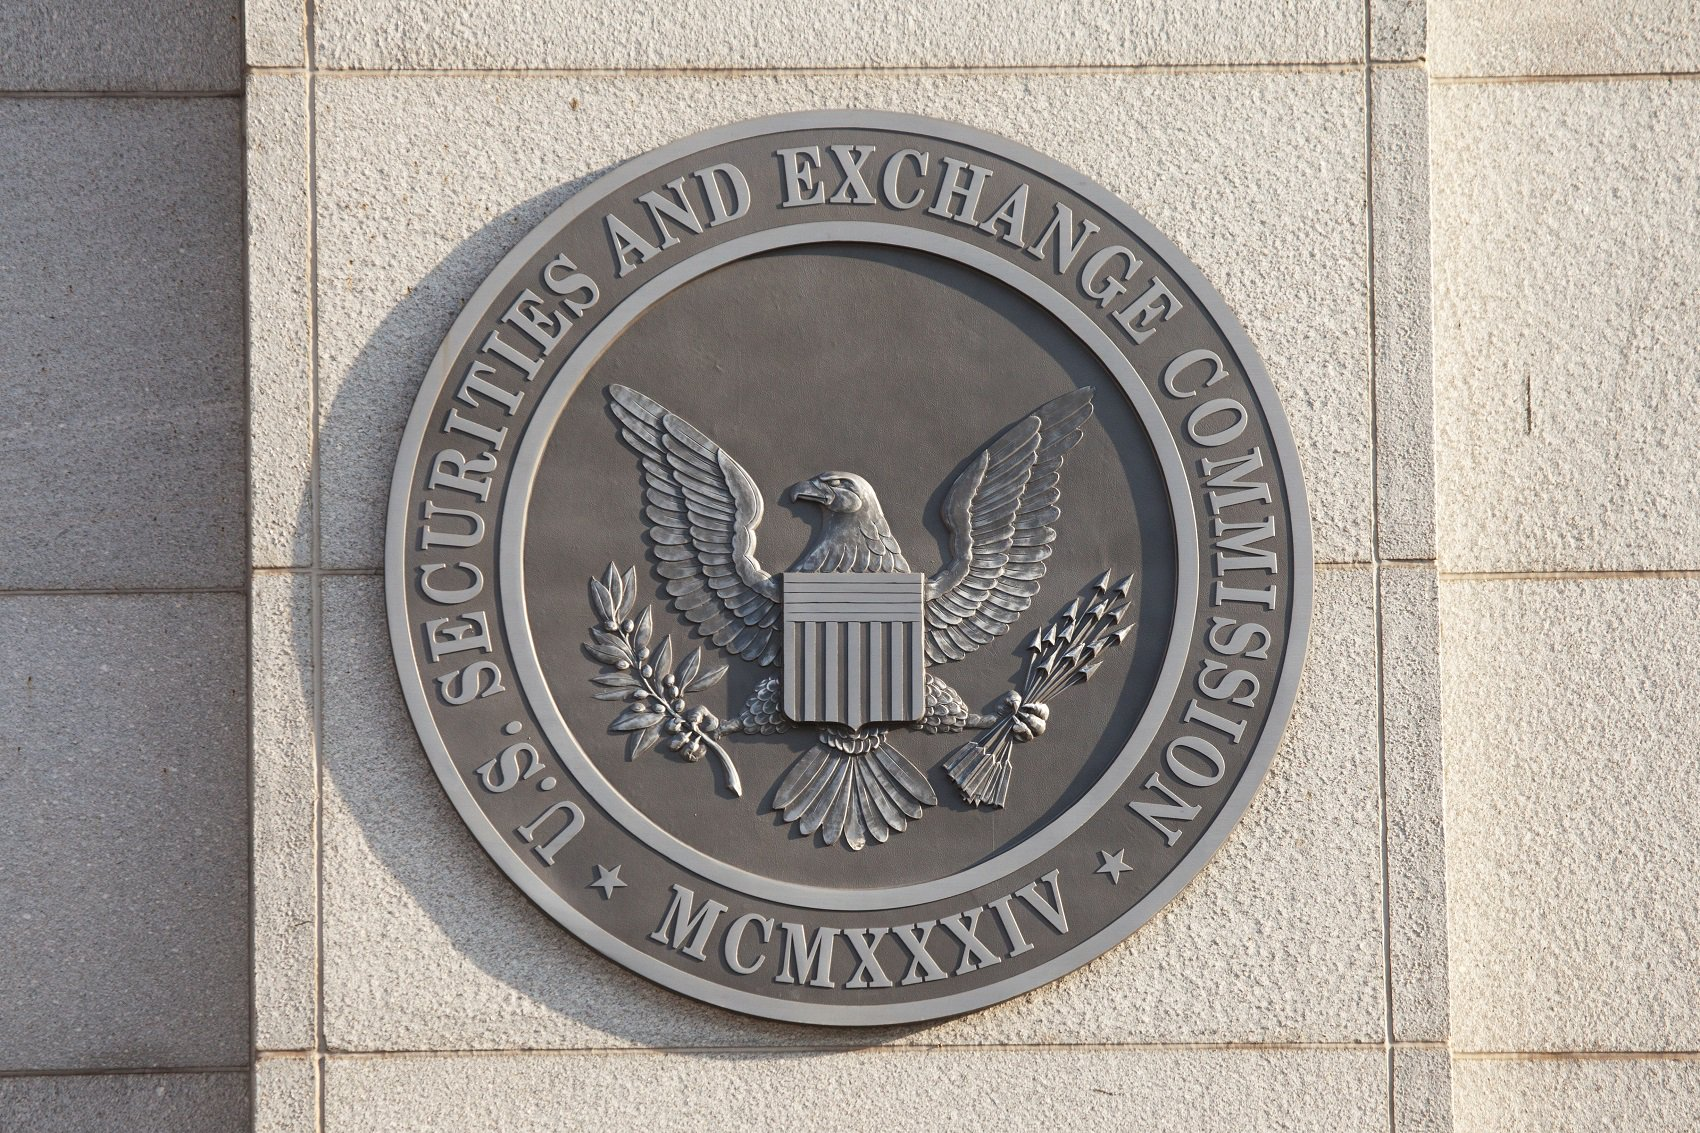 SEC: Celebrity ICO Endorsements Could Be Illegal